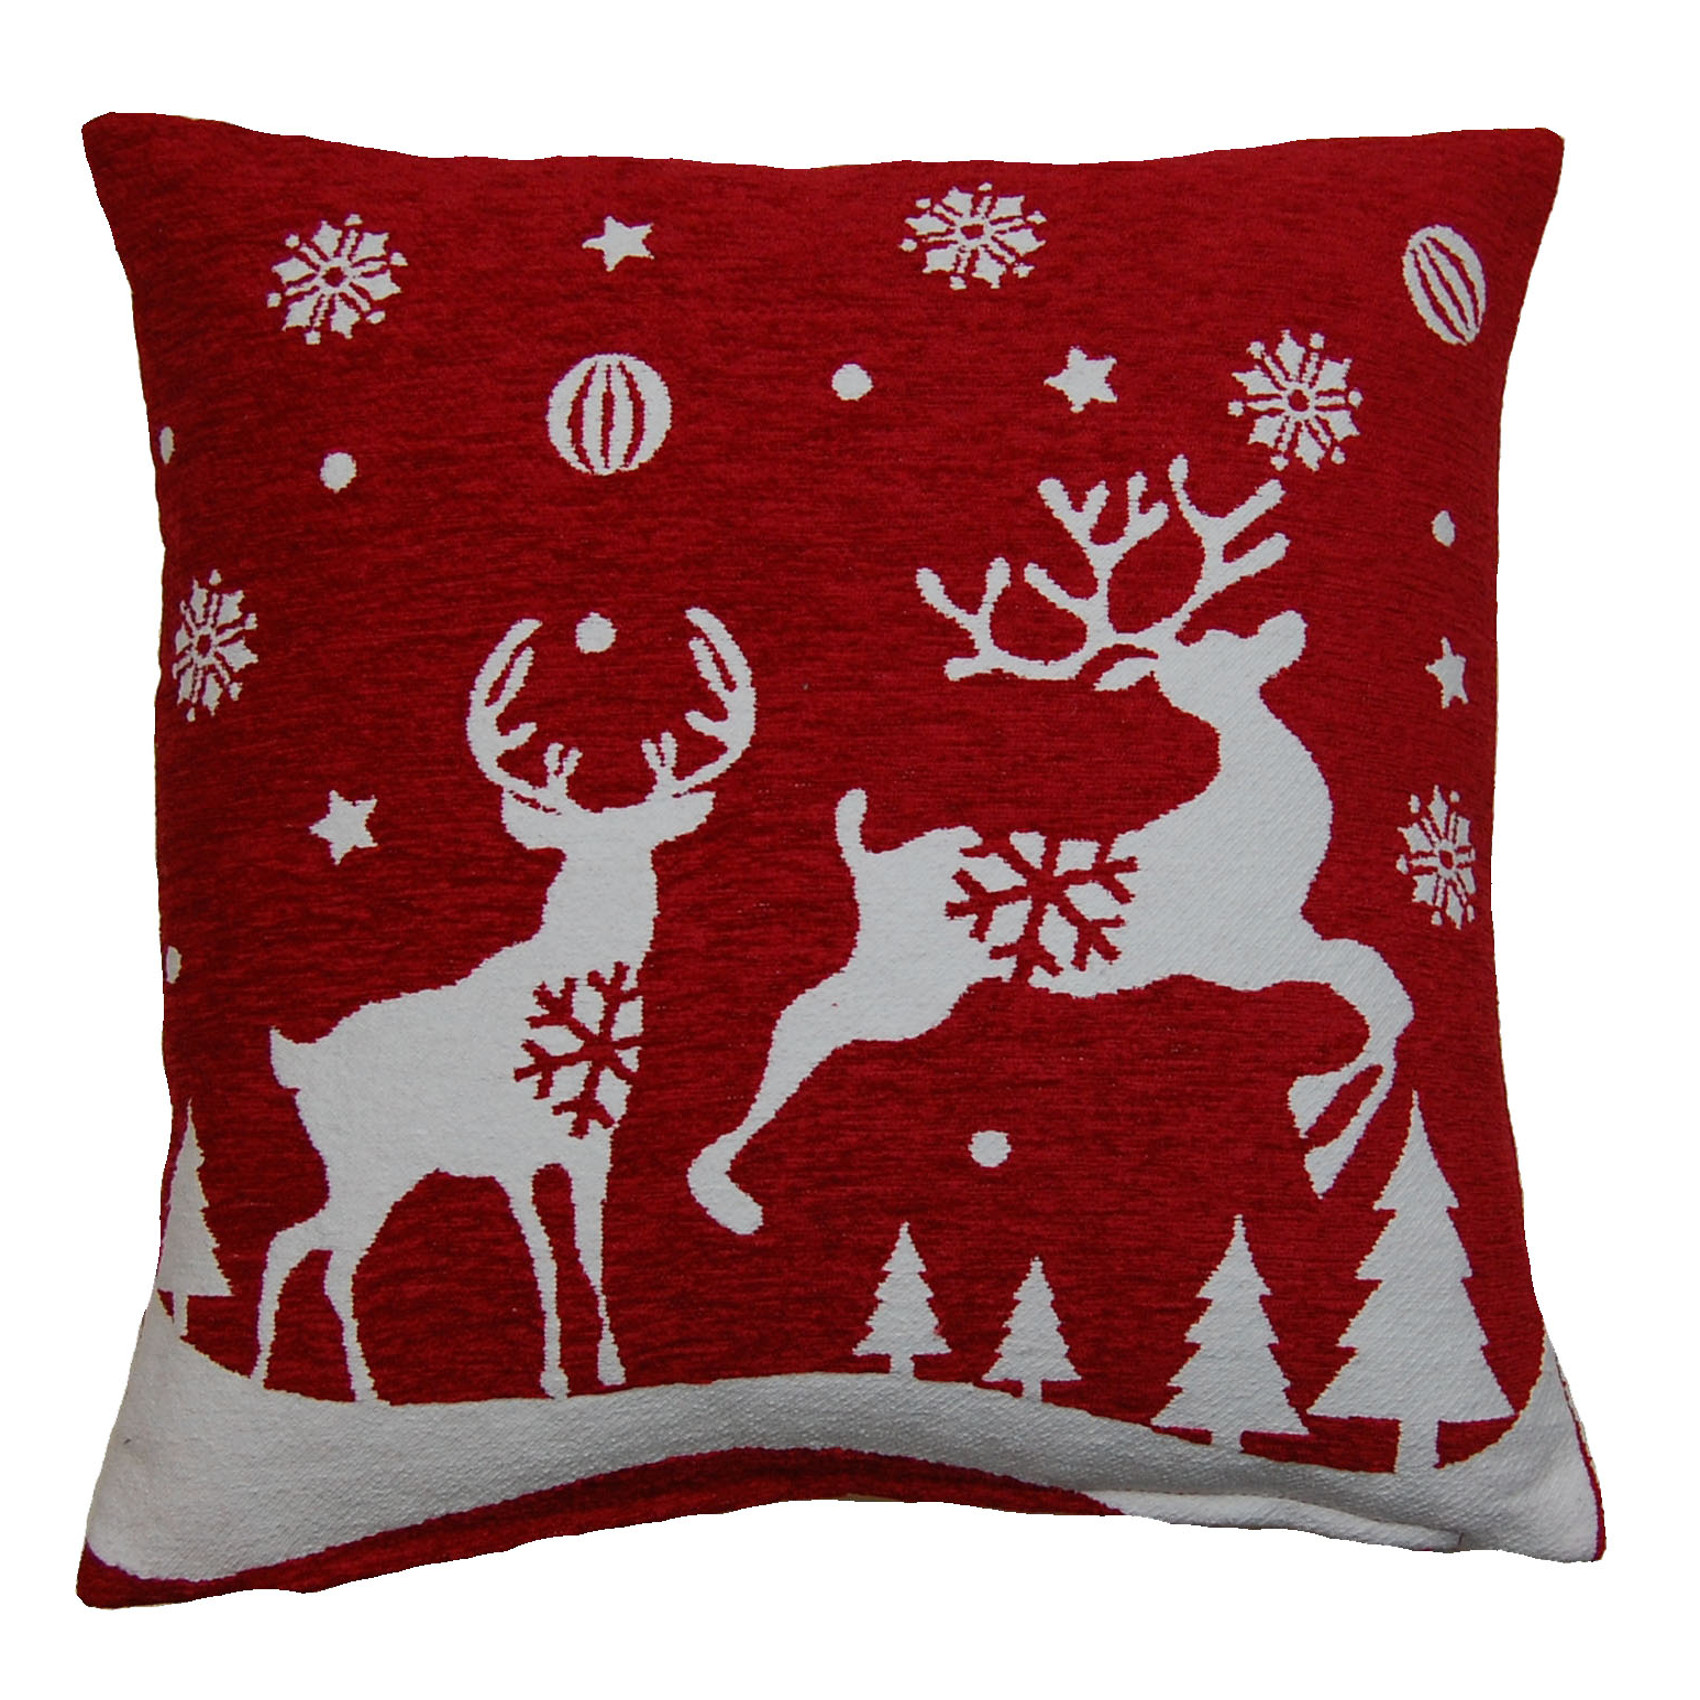 ebay uk christmas chair covers antique blue dining chairs festive cushion decorative xmas